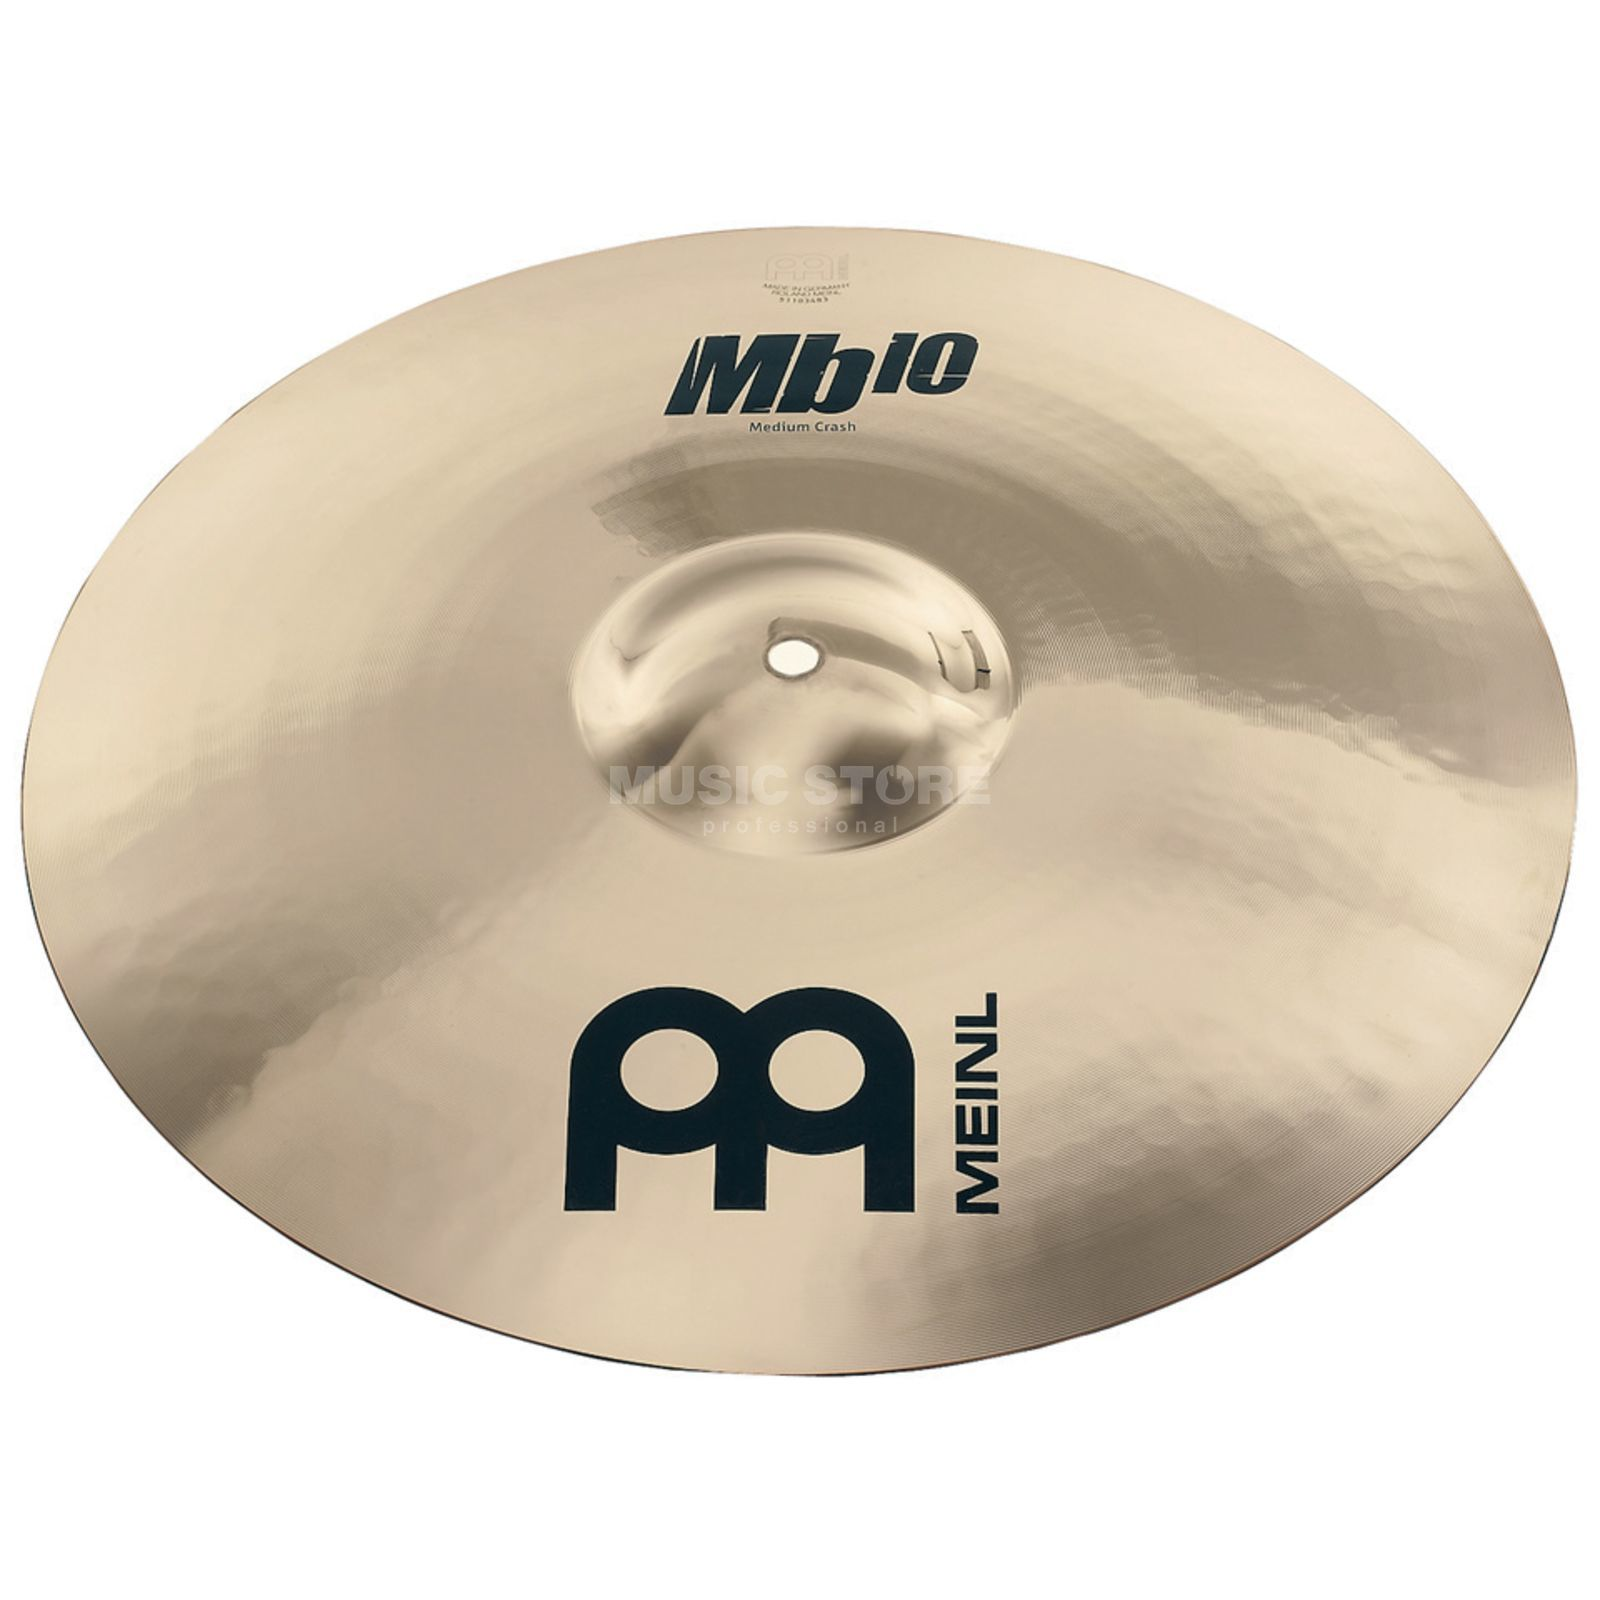 "Meinl MB10 Medium Crash 17"" MB10-17MC-B, Brilliant Finish Produktbild"